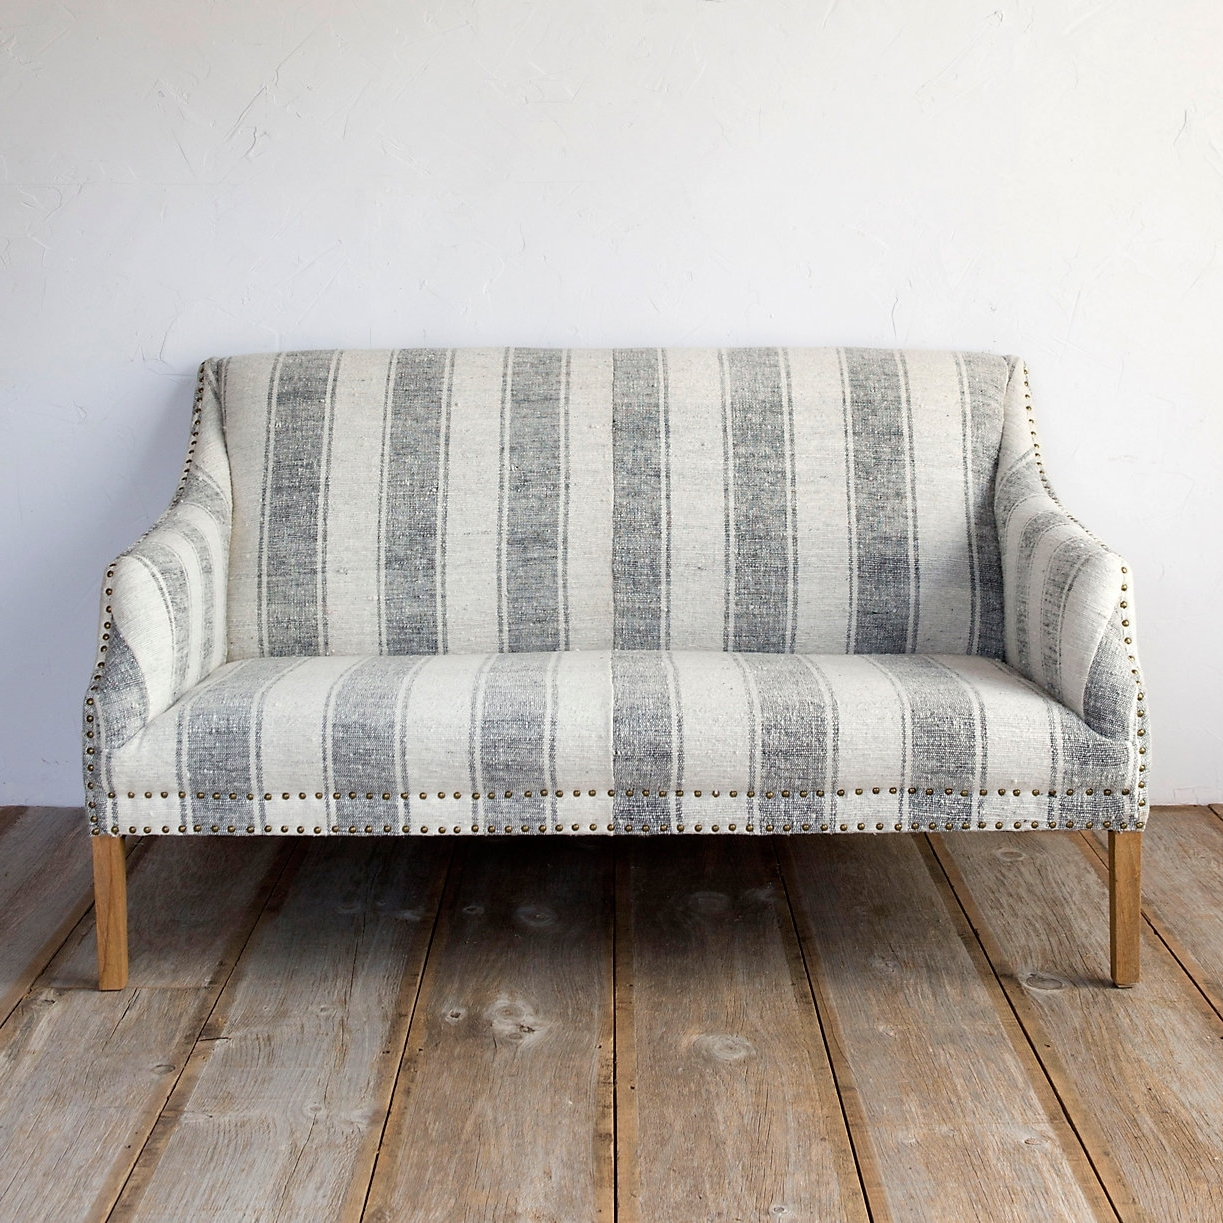 Widely Used Shabby Chic Decor For Sale Shabby Chic Used Furniture Shabby Chic With Shabby Chic Sofas (View 17 of 20)